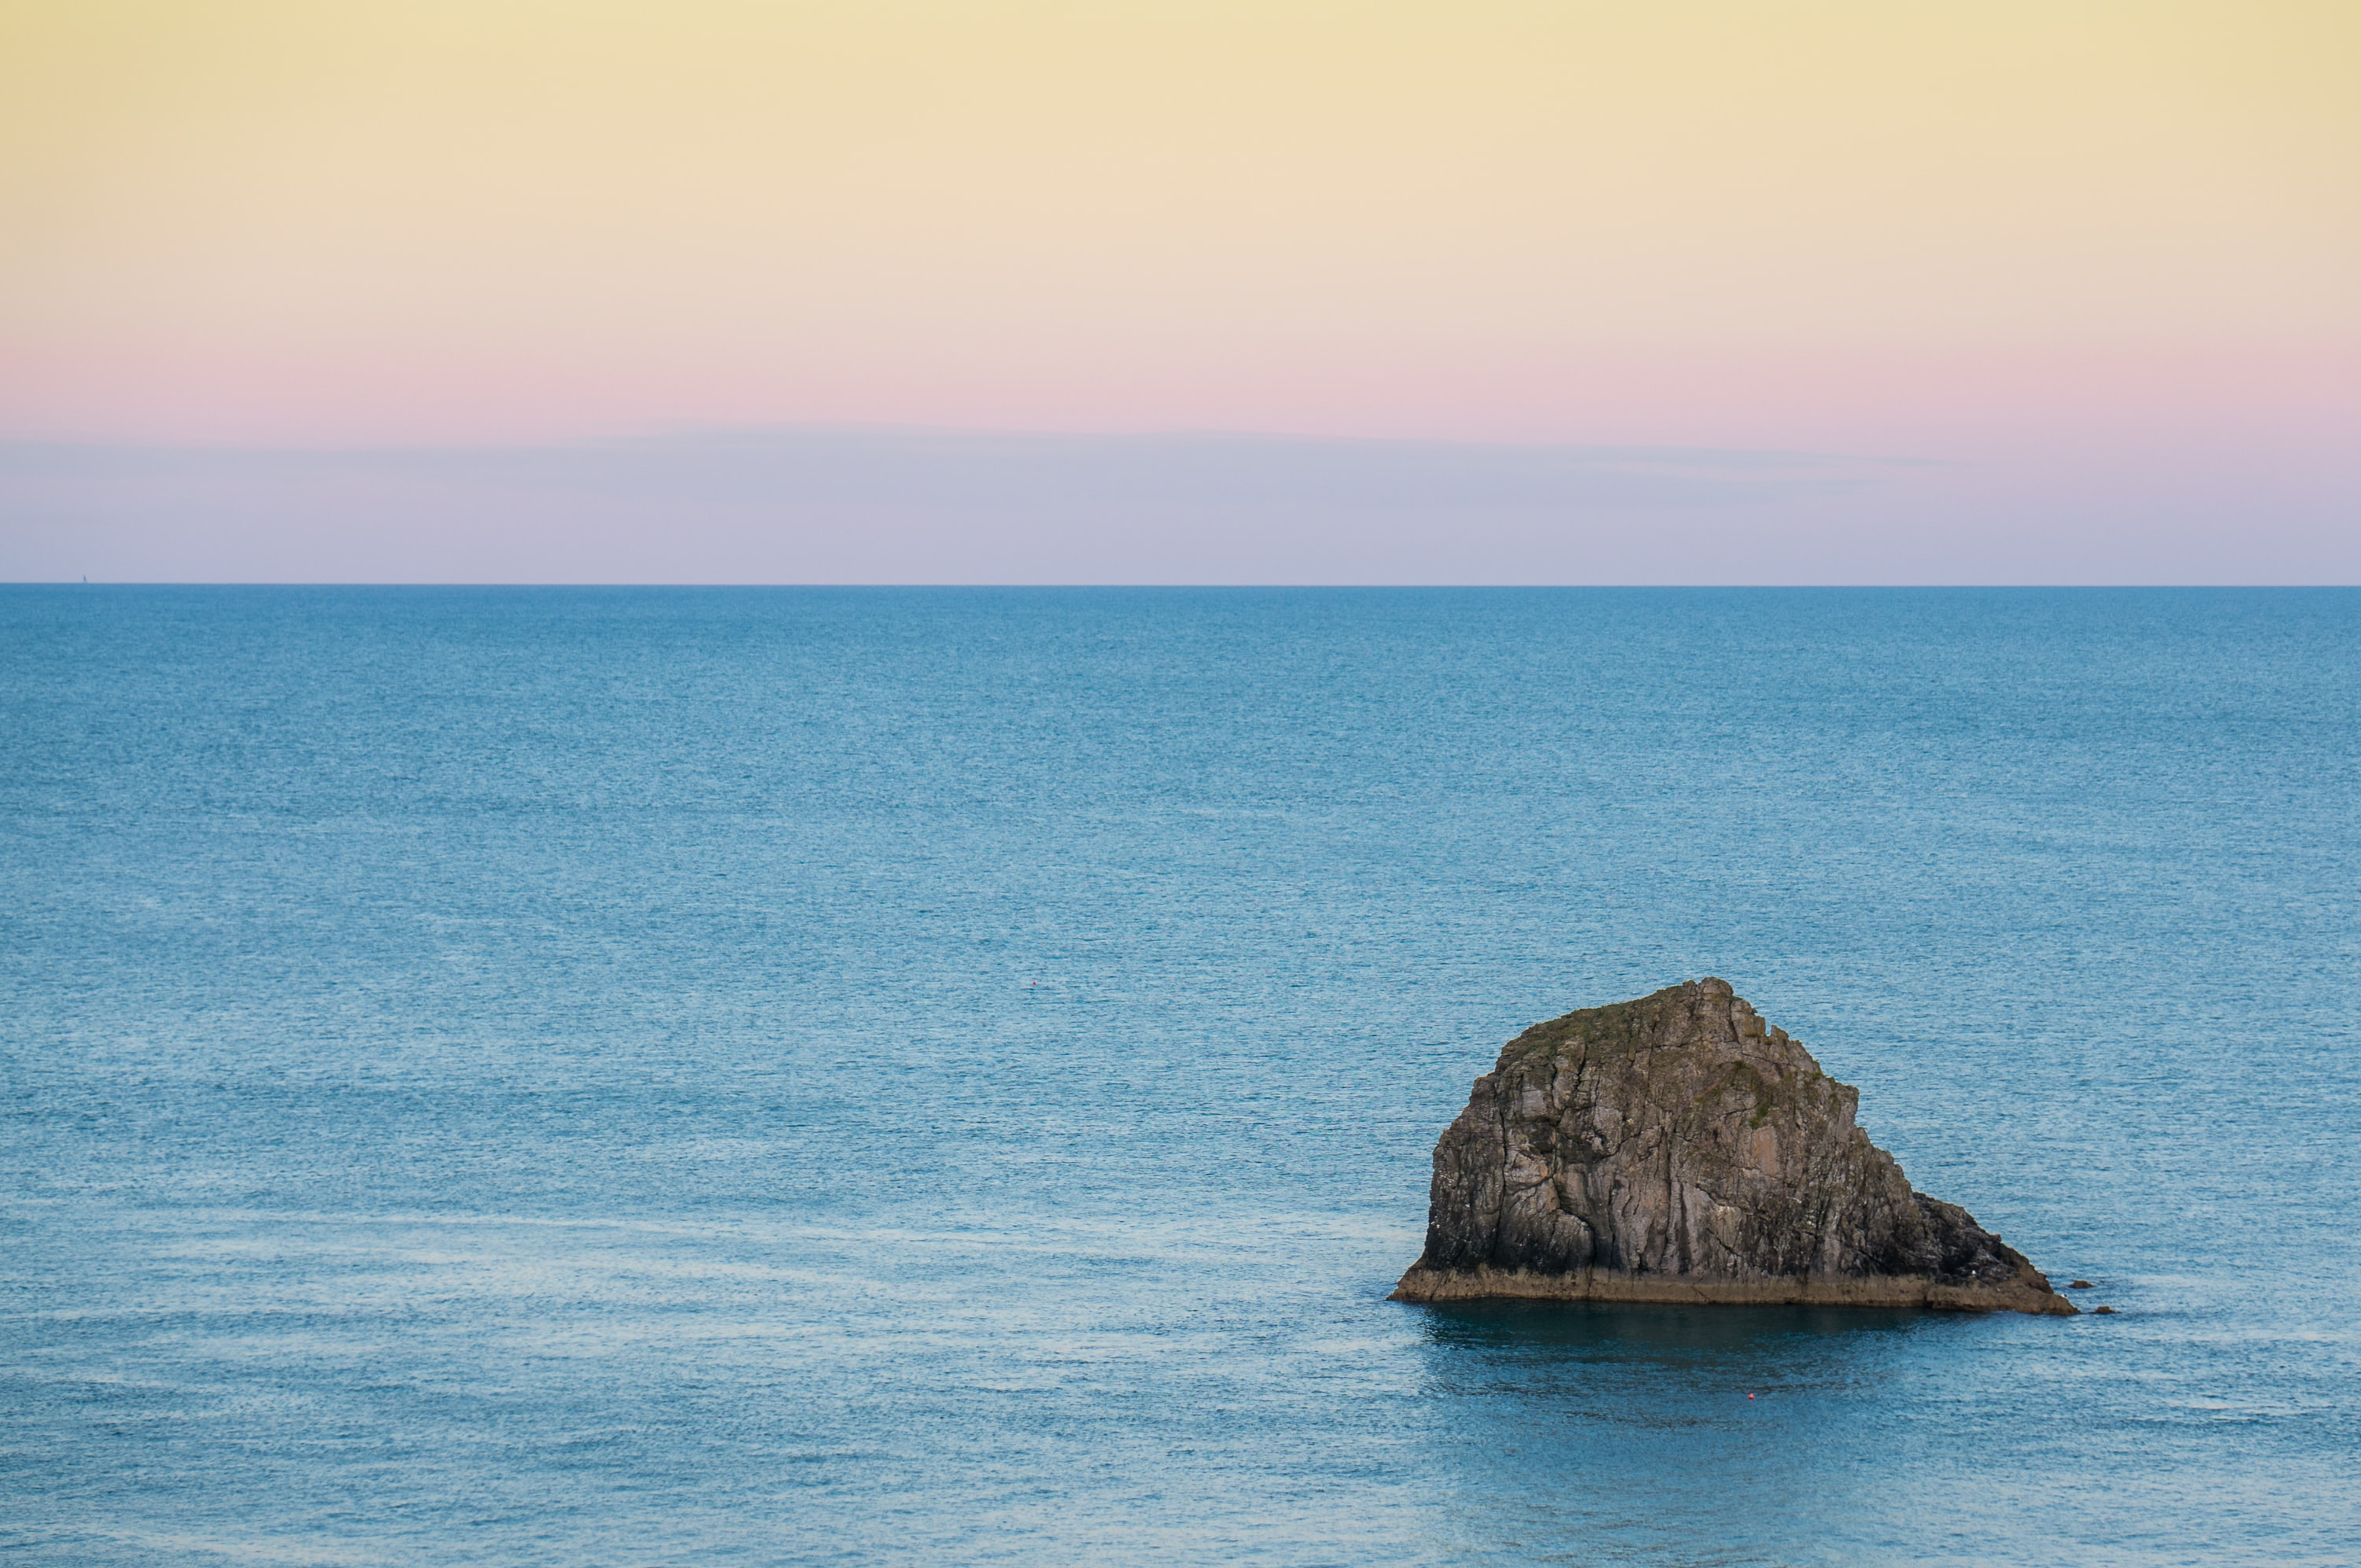 A lone rock formation protruding from the azure sea under a pale orange sky